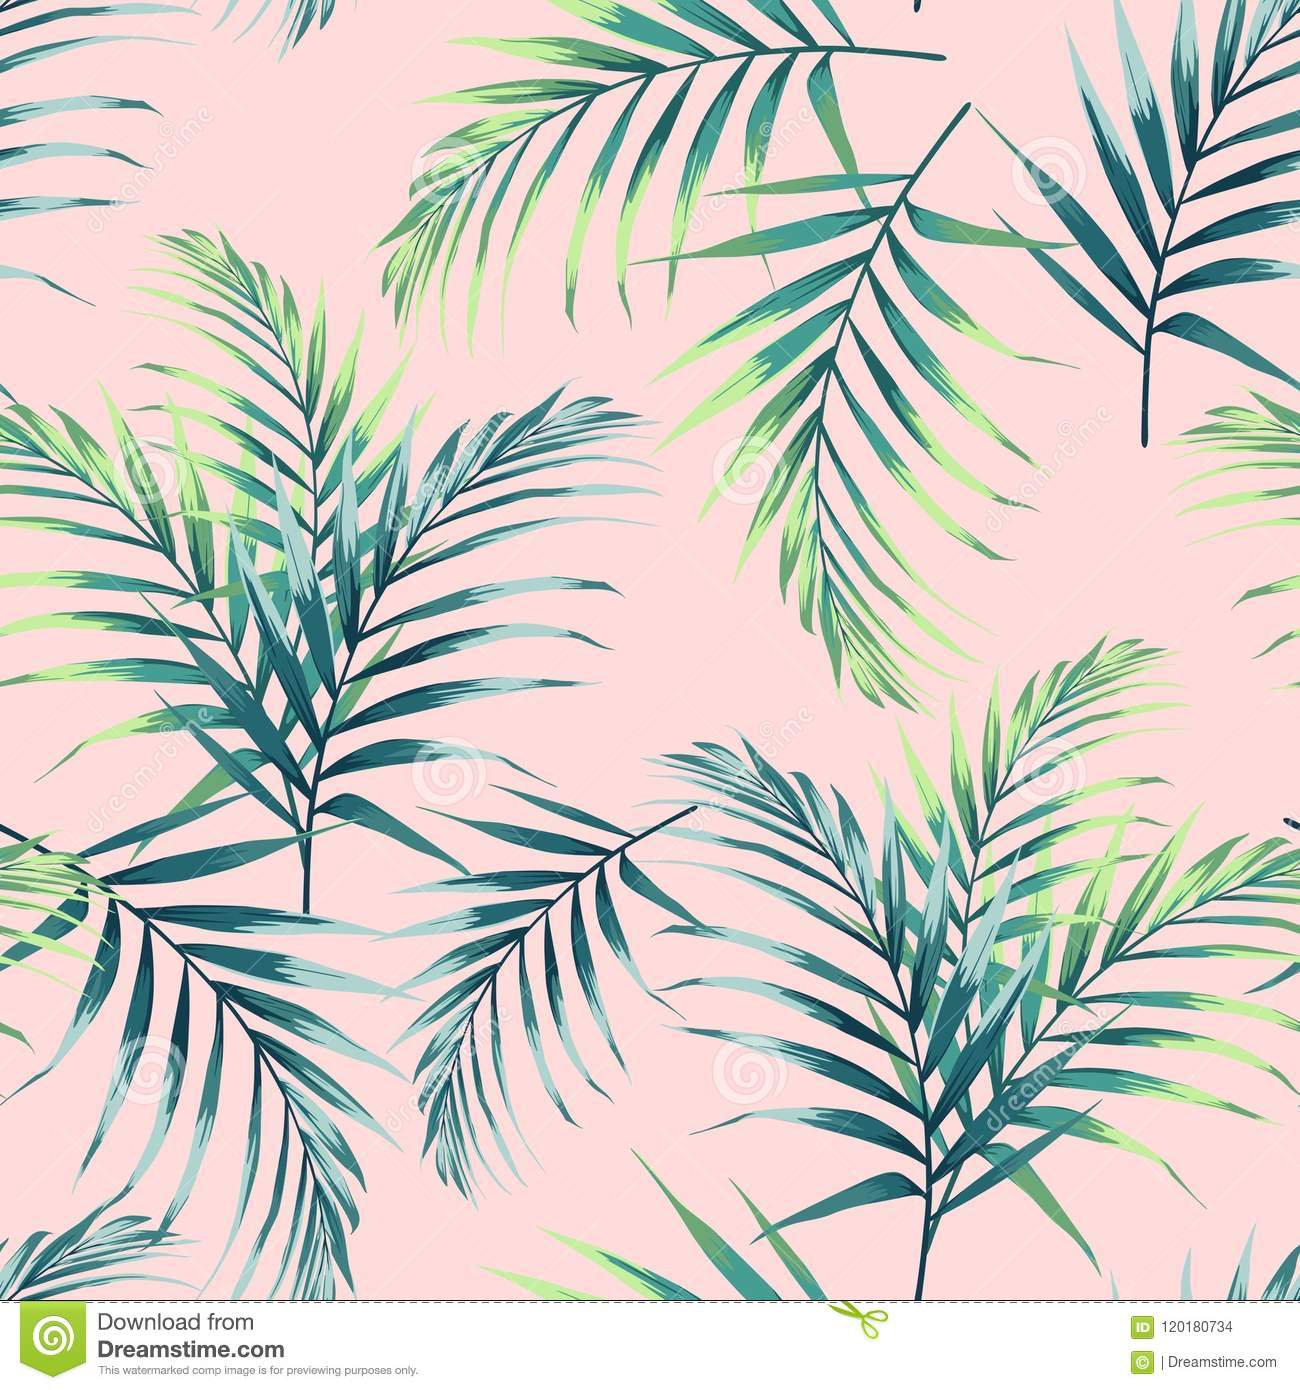 Tropical Leaves Green Seamless Pink Background Stock Illustrations 14 603 Tropical Leaves Green Seamless Pink Background Stock Illustrations Vectors Clipart Dreamstime Using pink plants as part of your decor is an easy way to bring unexpected color into the mix. https www dreamstime com seamless pattern tropical leaves dark bright green palm light pink background vector illustration jungle foliage image120180734